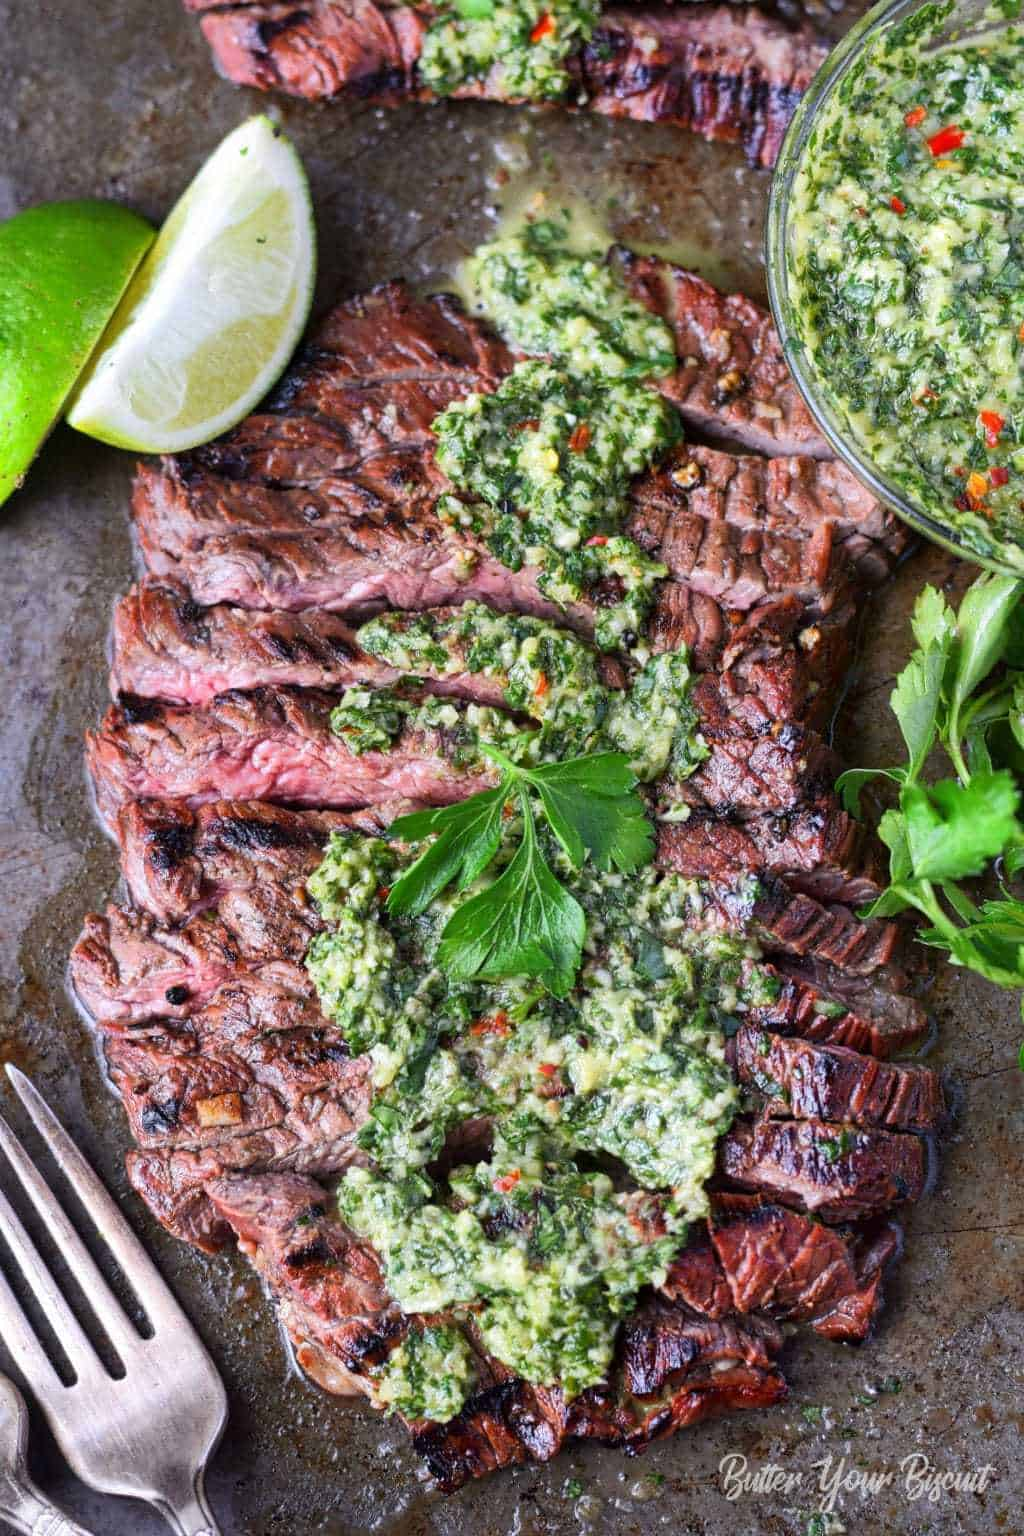 Grilled skirt steak and chimichurri spread on top with forks and lime slices